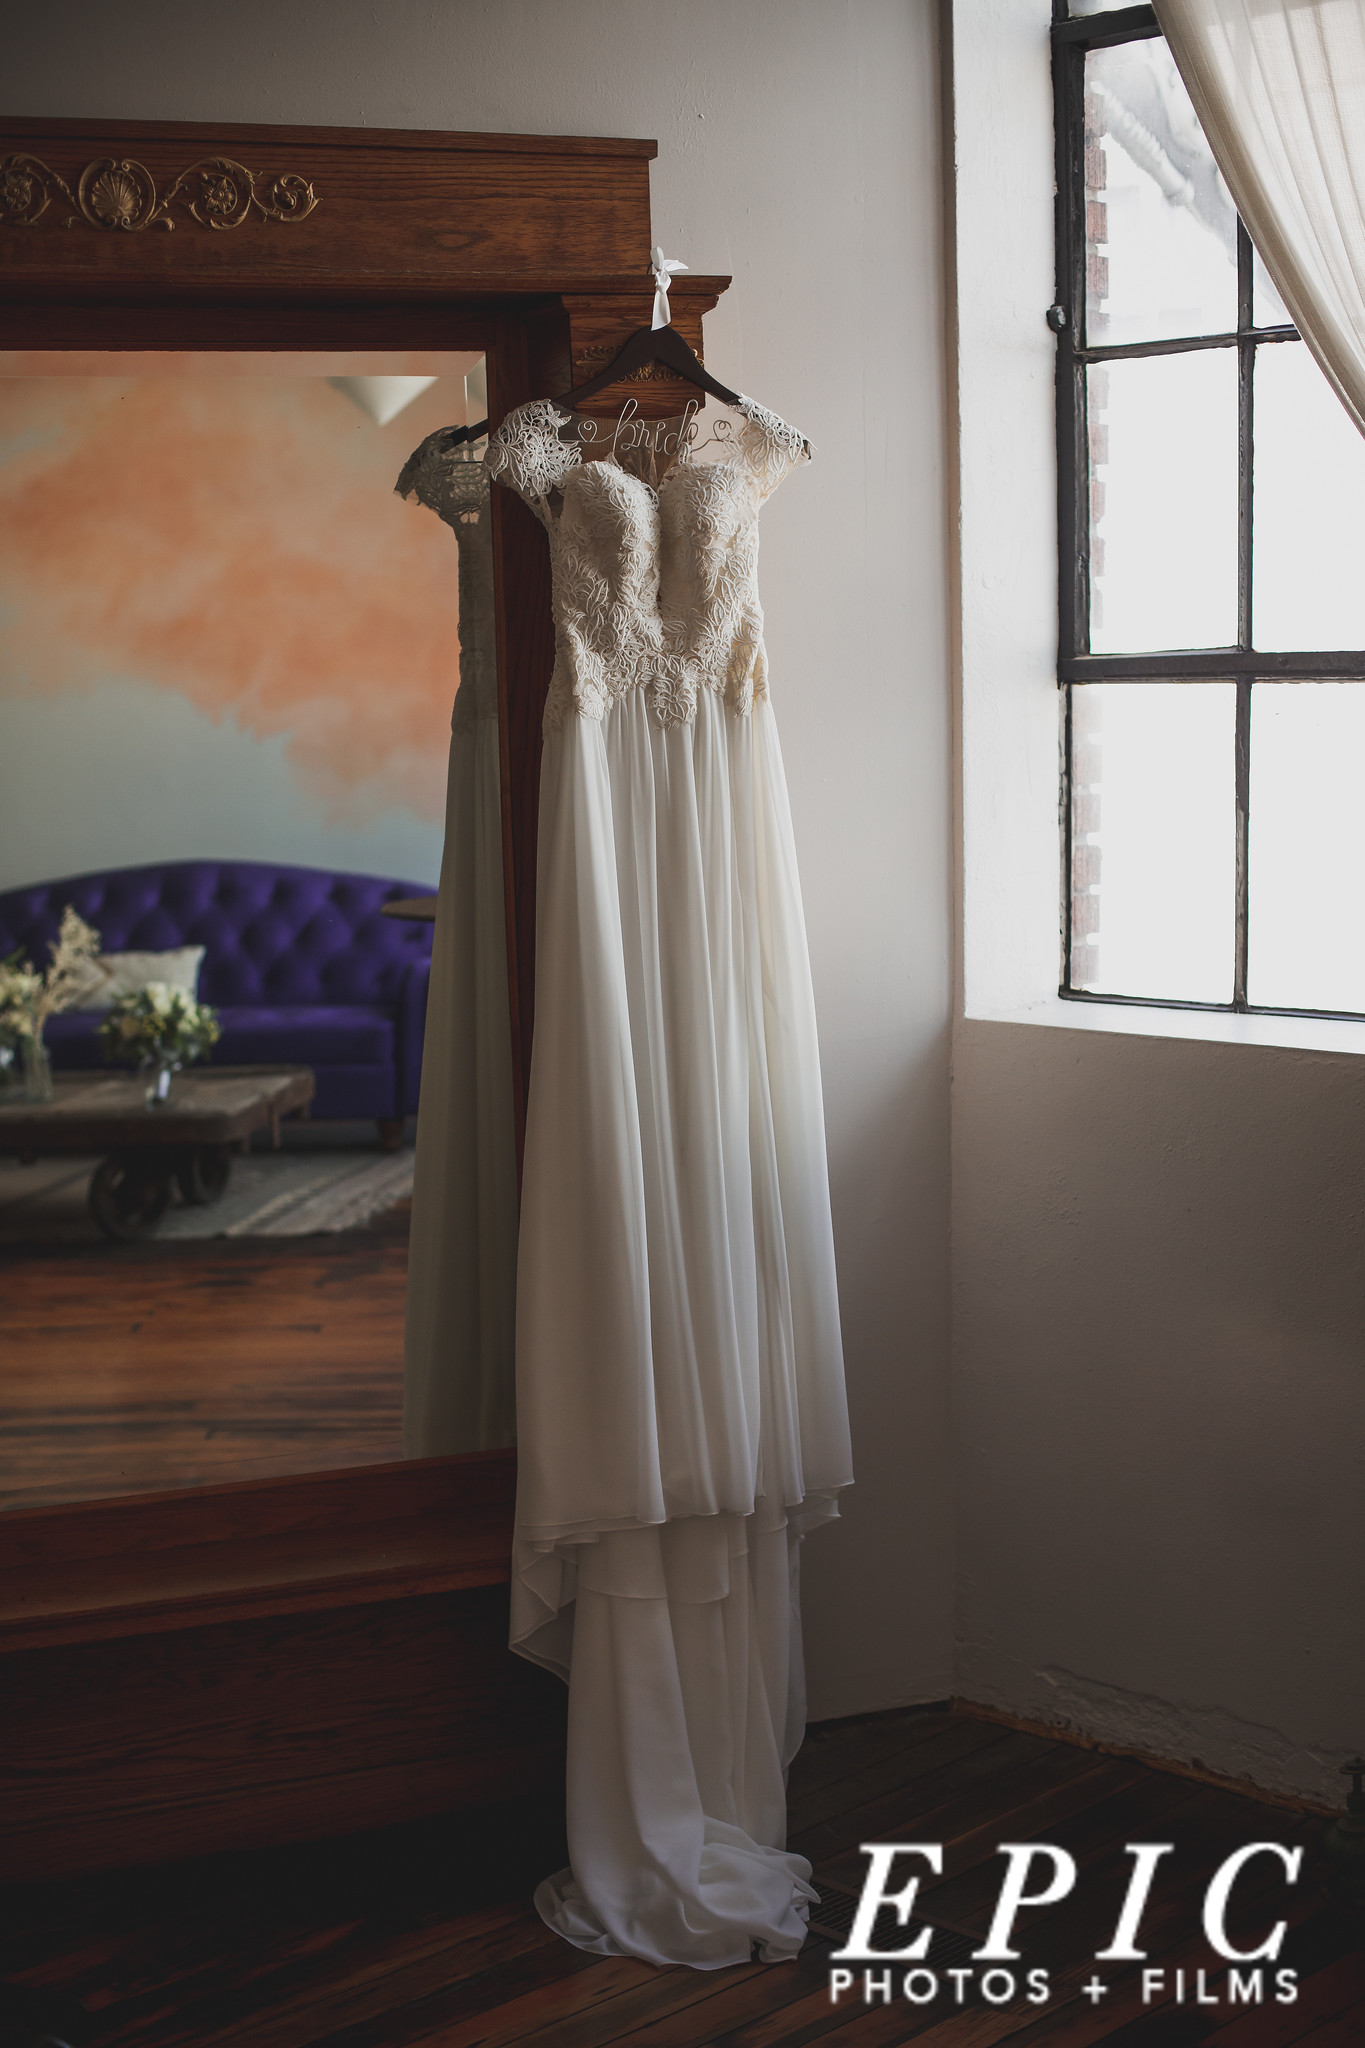 Wedding dress hanging on mirror at Foundation Event Space